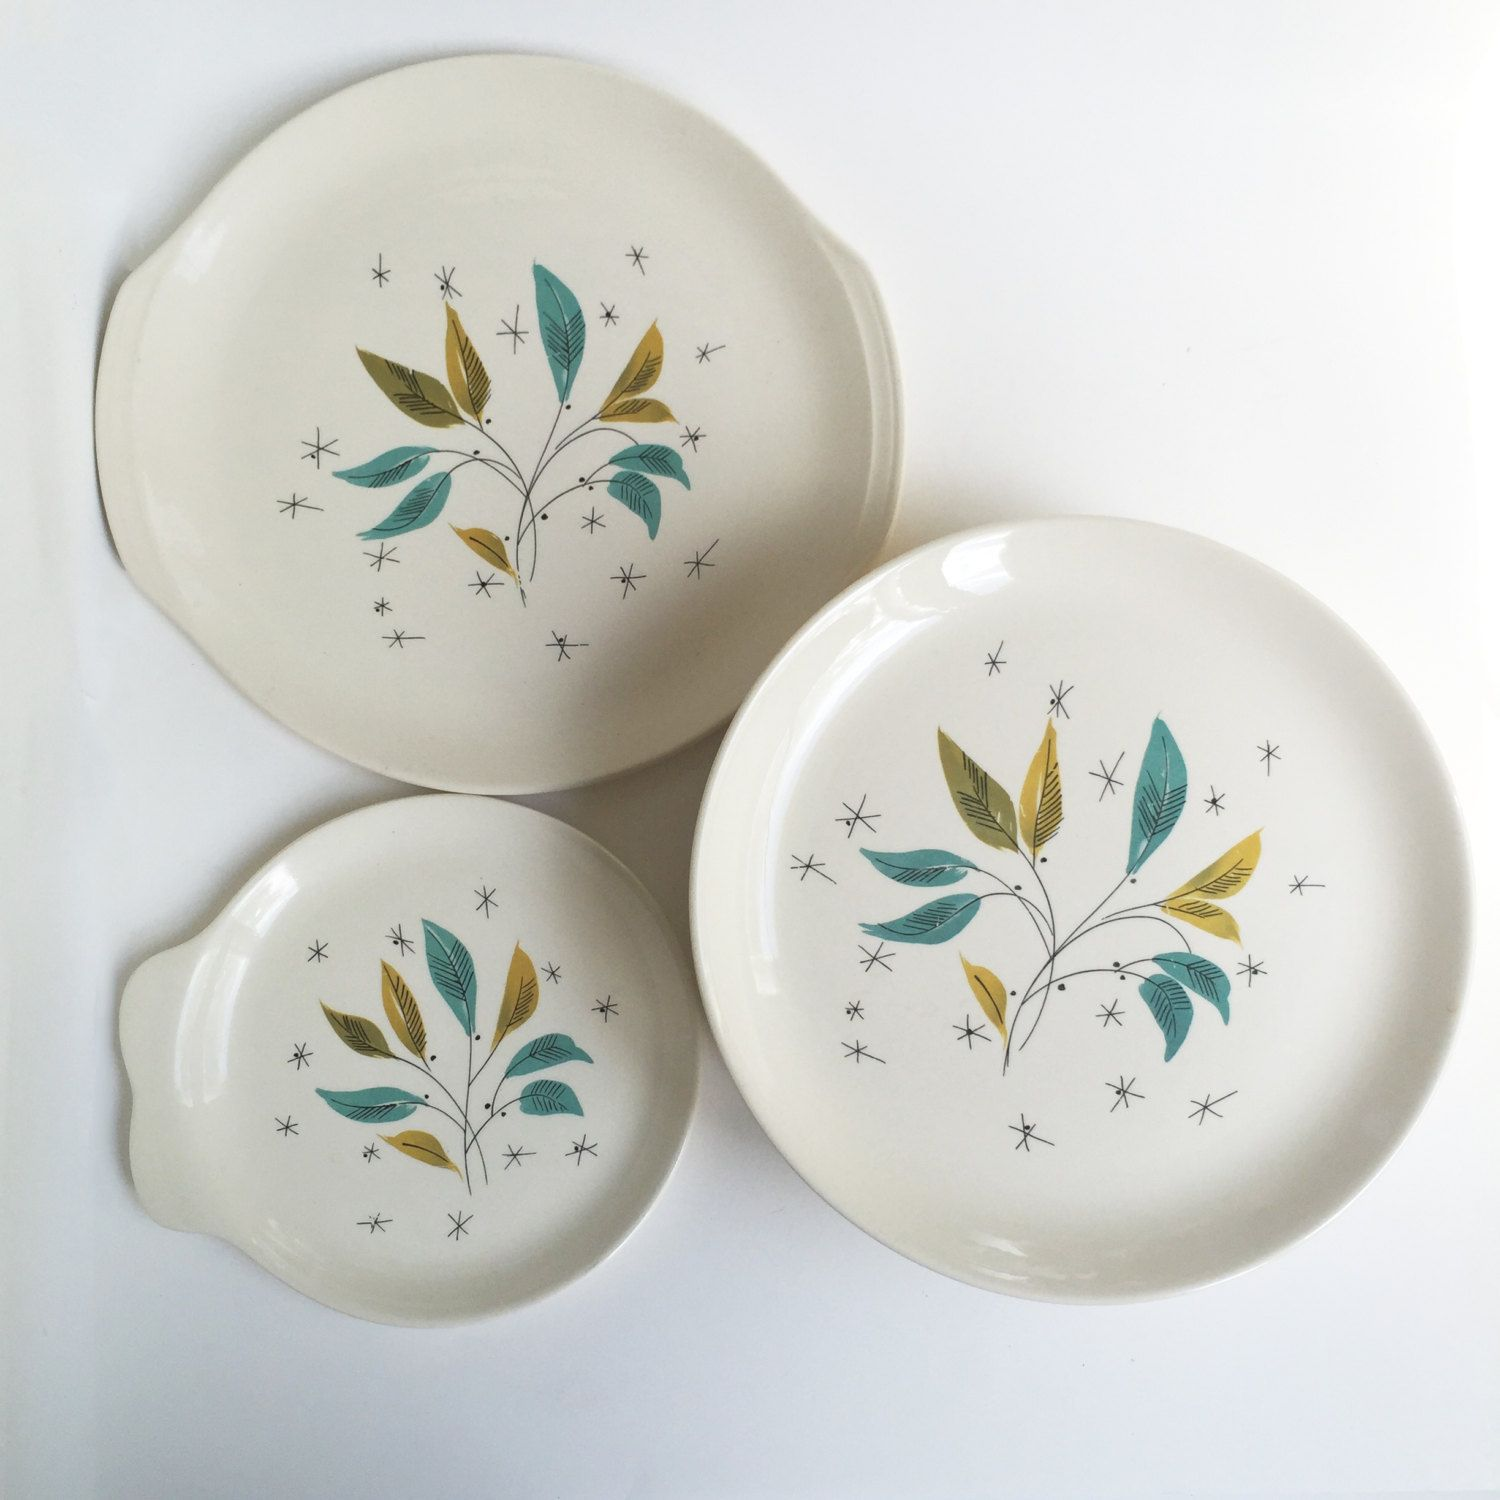 Salem Ovenproof Daybreak Platters and Large Dinner Plates (9) by PowersMod on & Salem Ovenproof Daybreak Platters and Large Dinner Plates (9) by ...